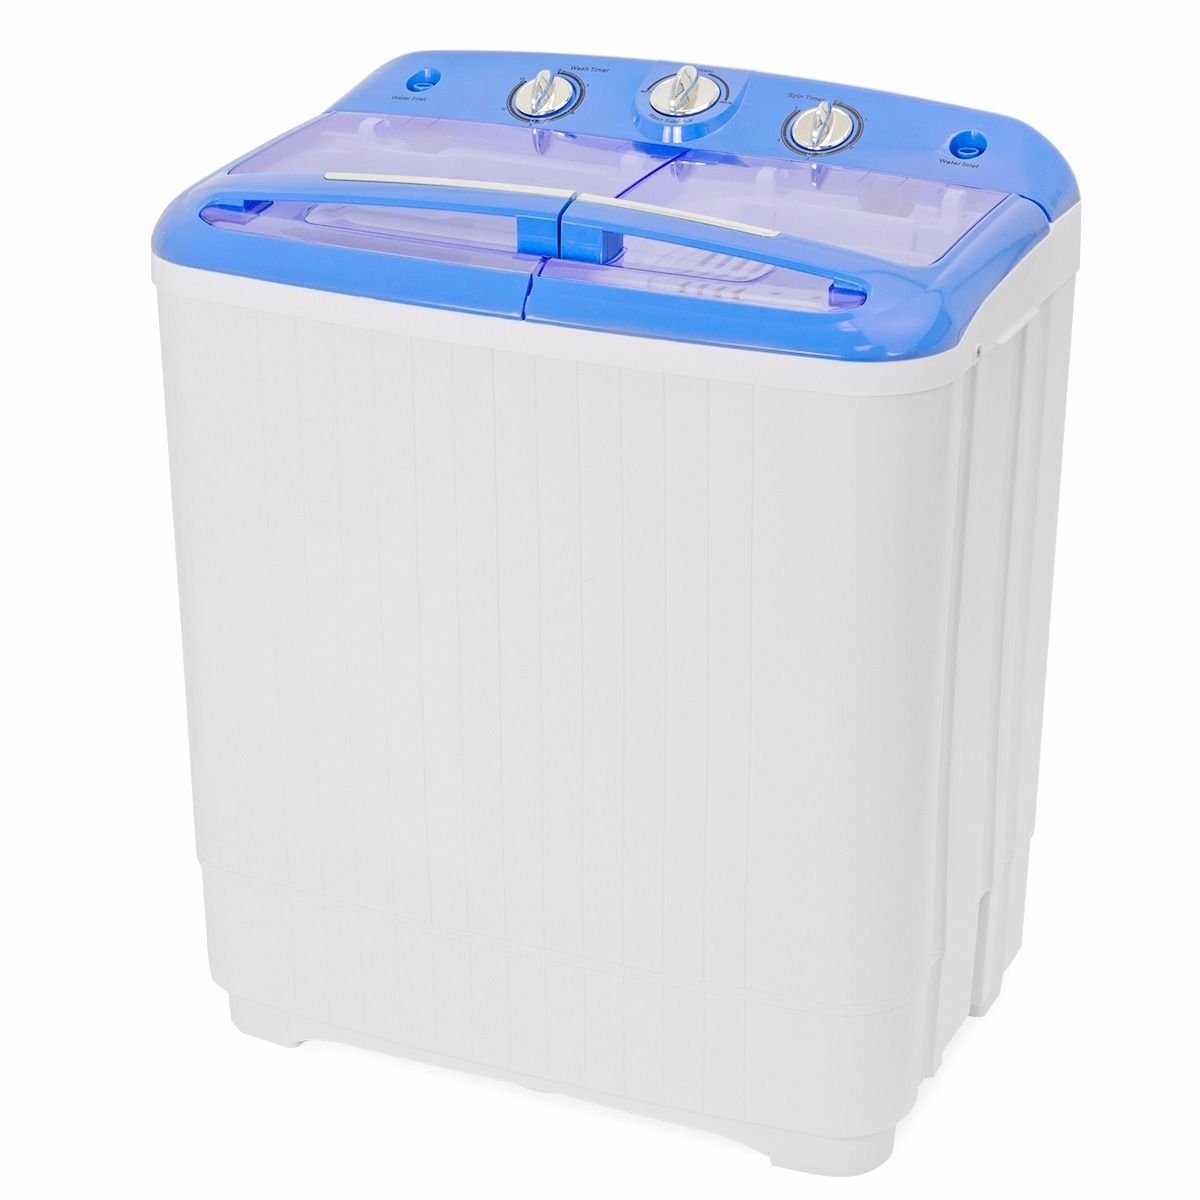 Gracelove Portable Mini Washer Dorm RV Cycle Compact 9 lbs Wash Dry Spin Machine Laundry by Love+Grace (Image #1)